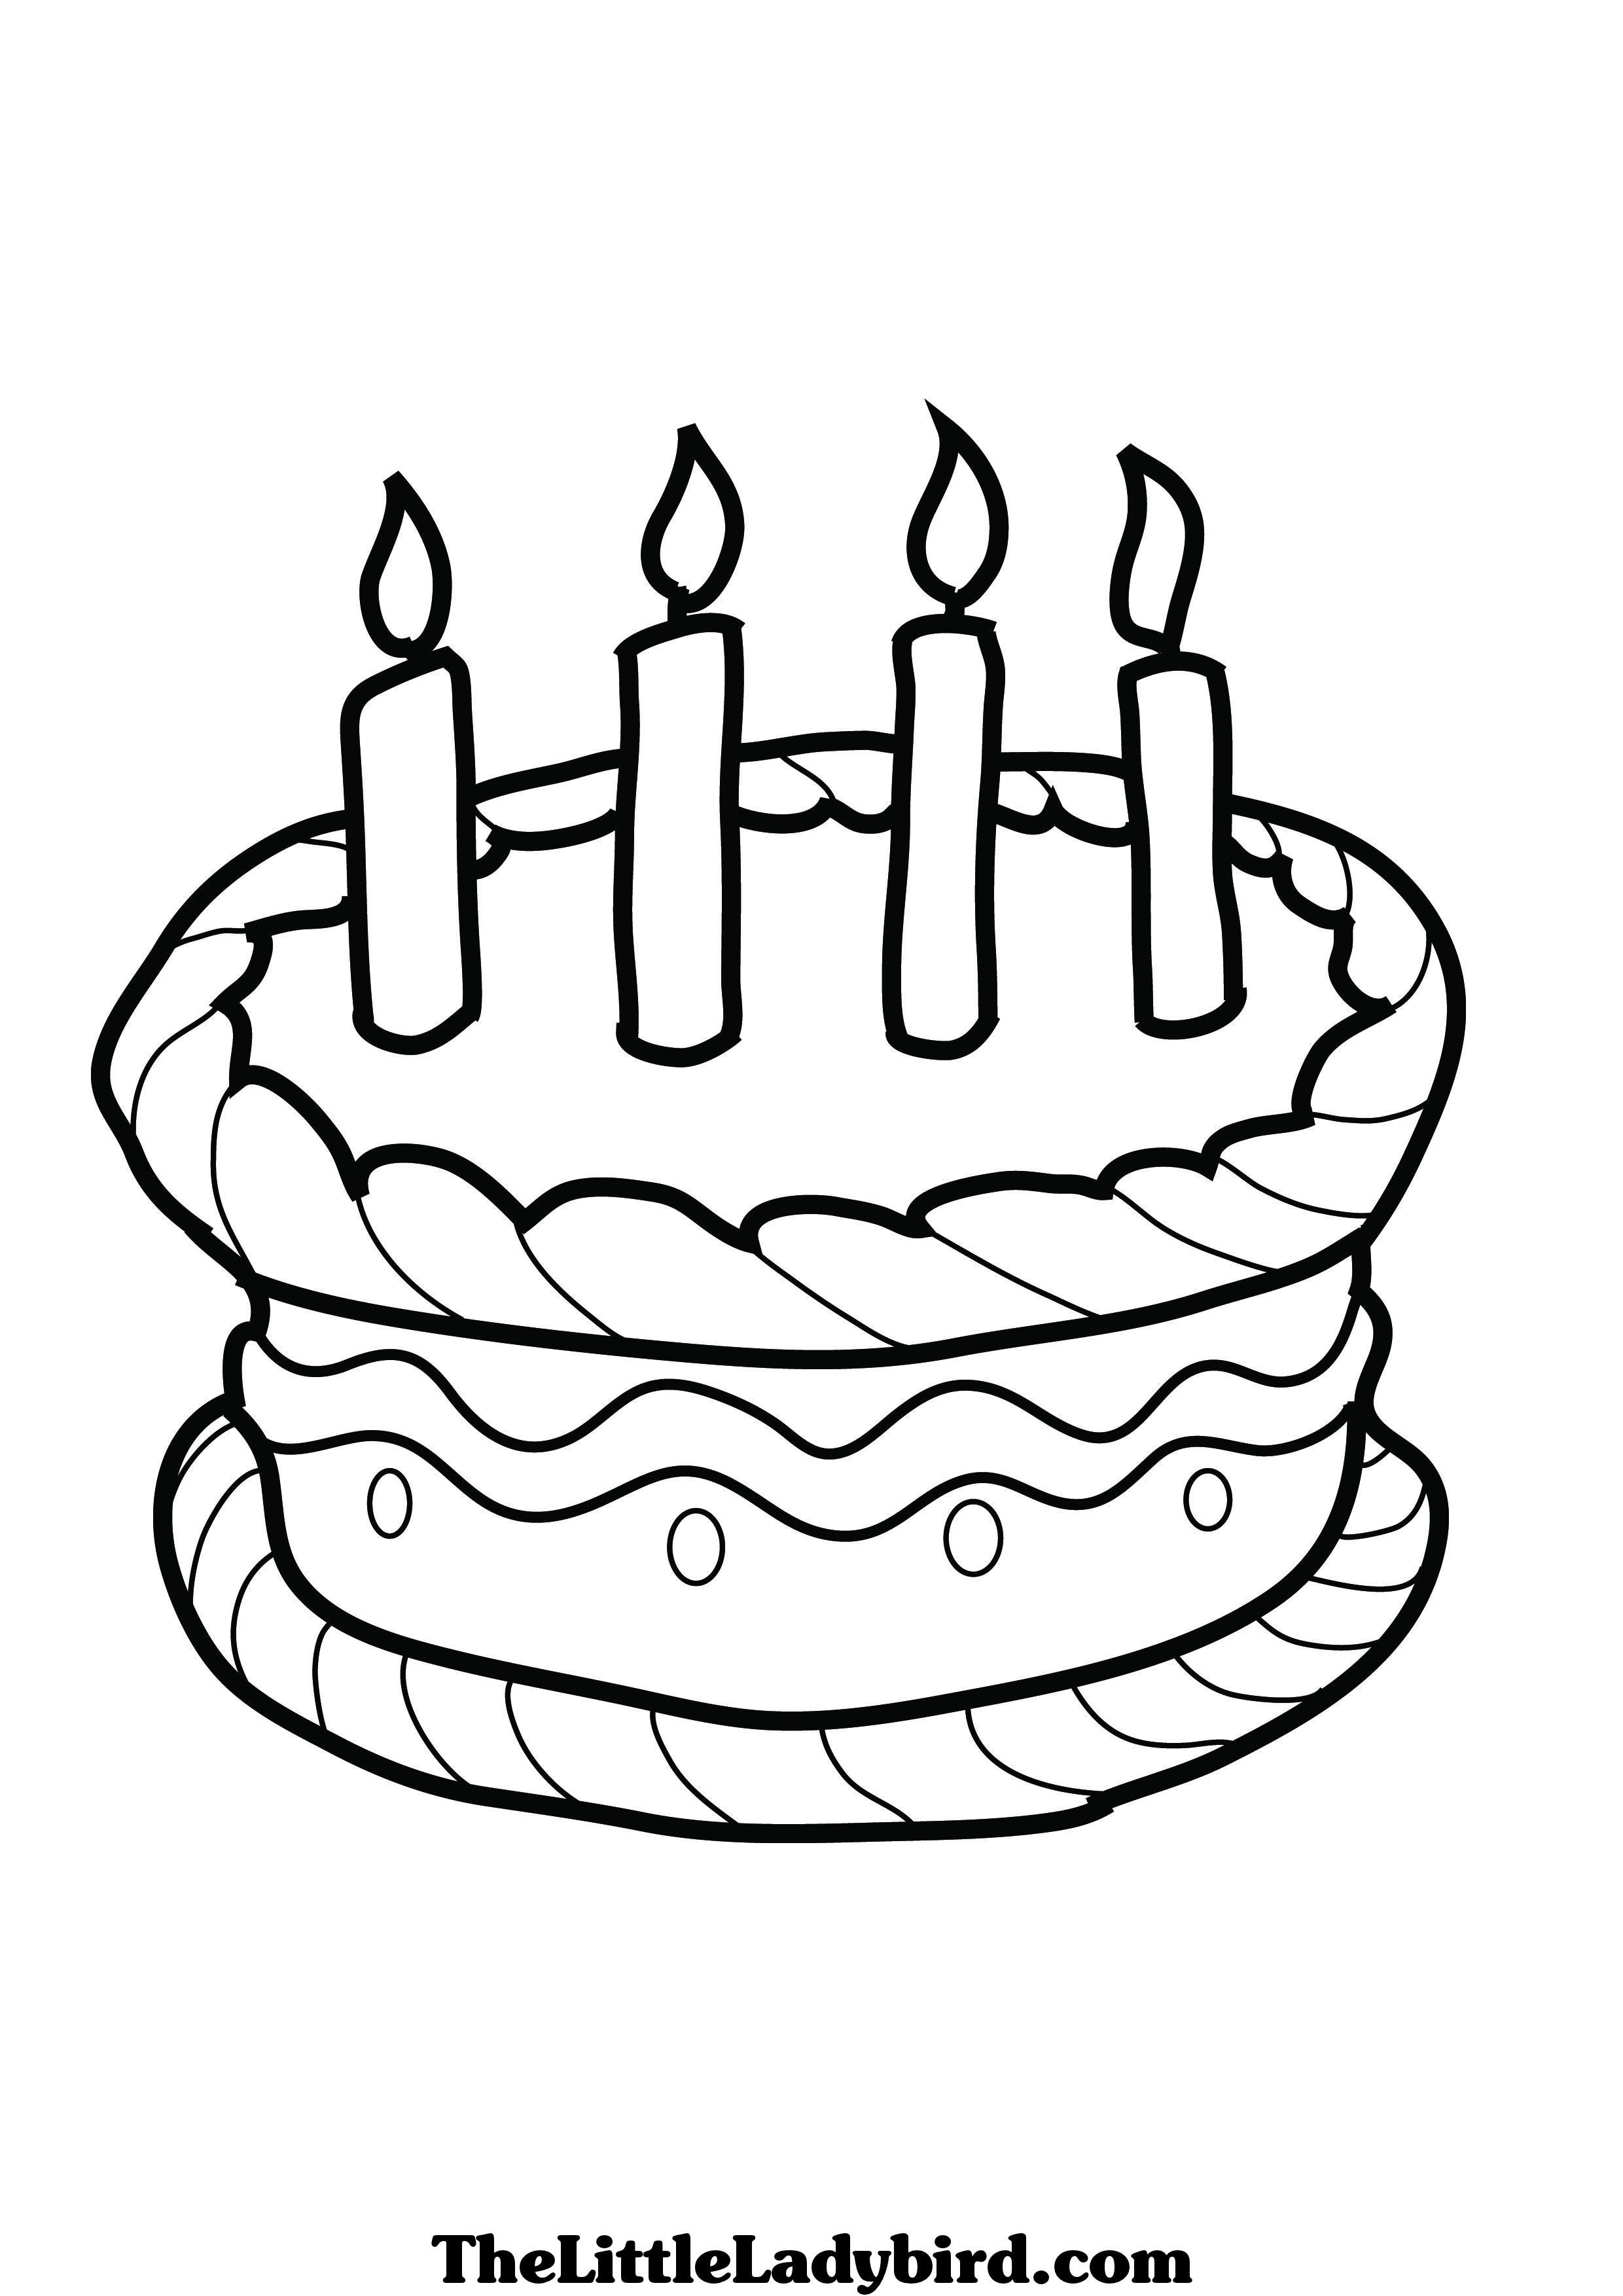 Birthday Cake Coloring Pages Happy Birthday Coloring Pages Birthday Coloring Pages Birthday Cake Clip Art